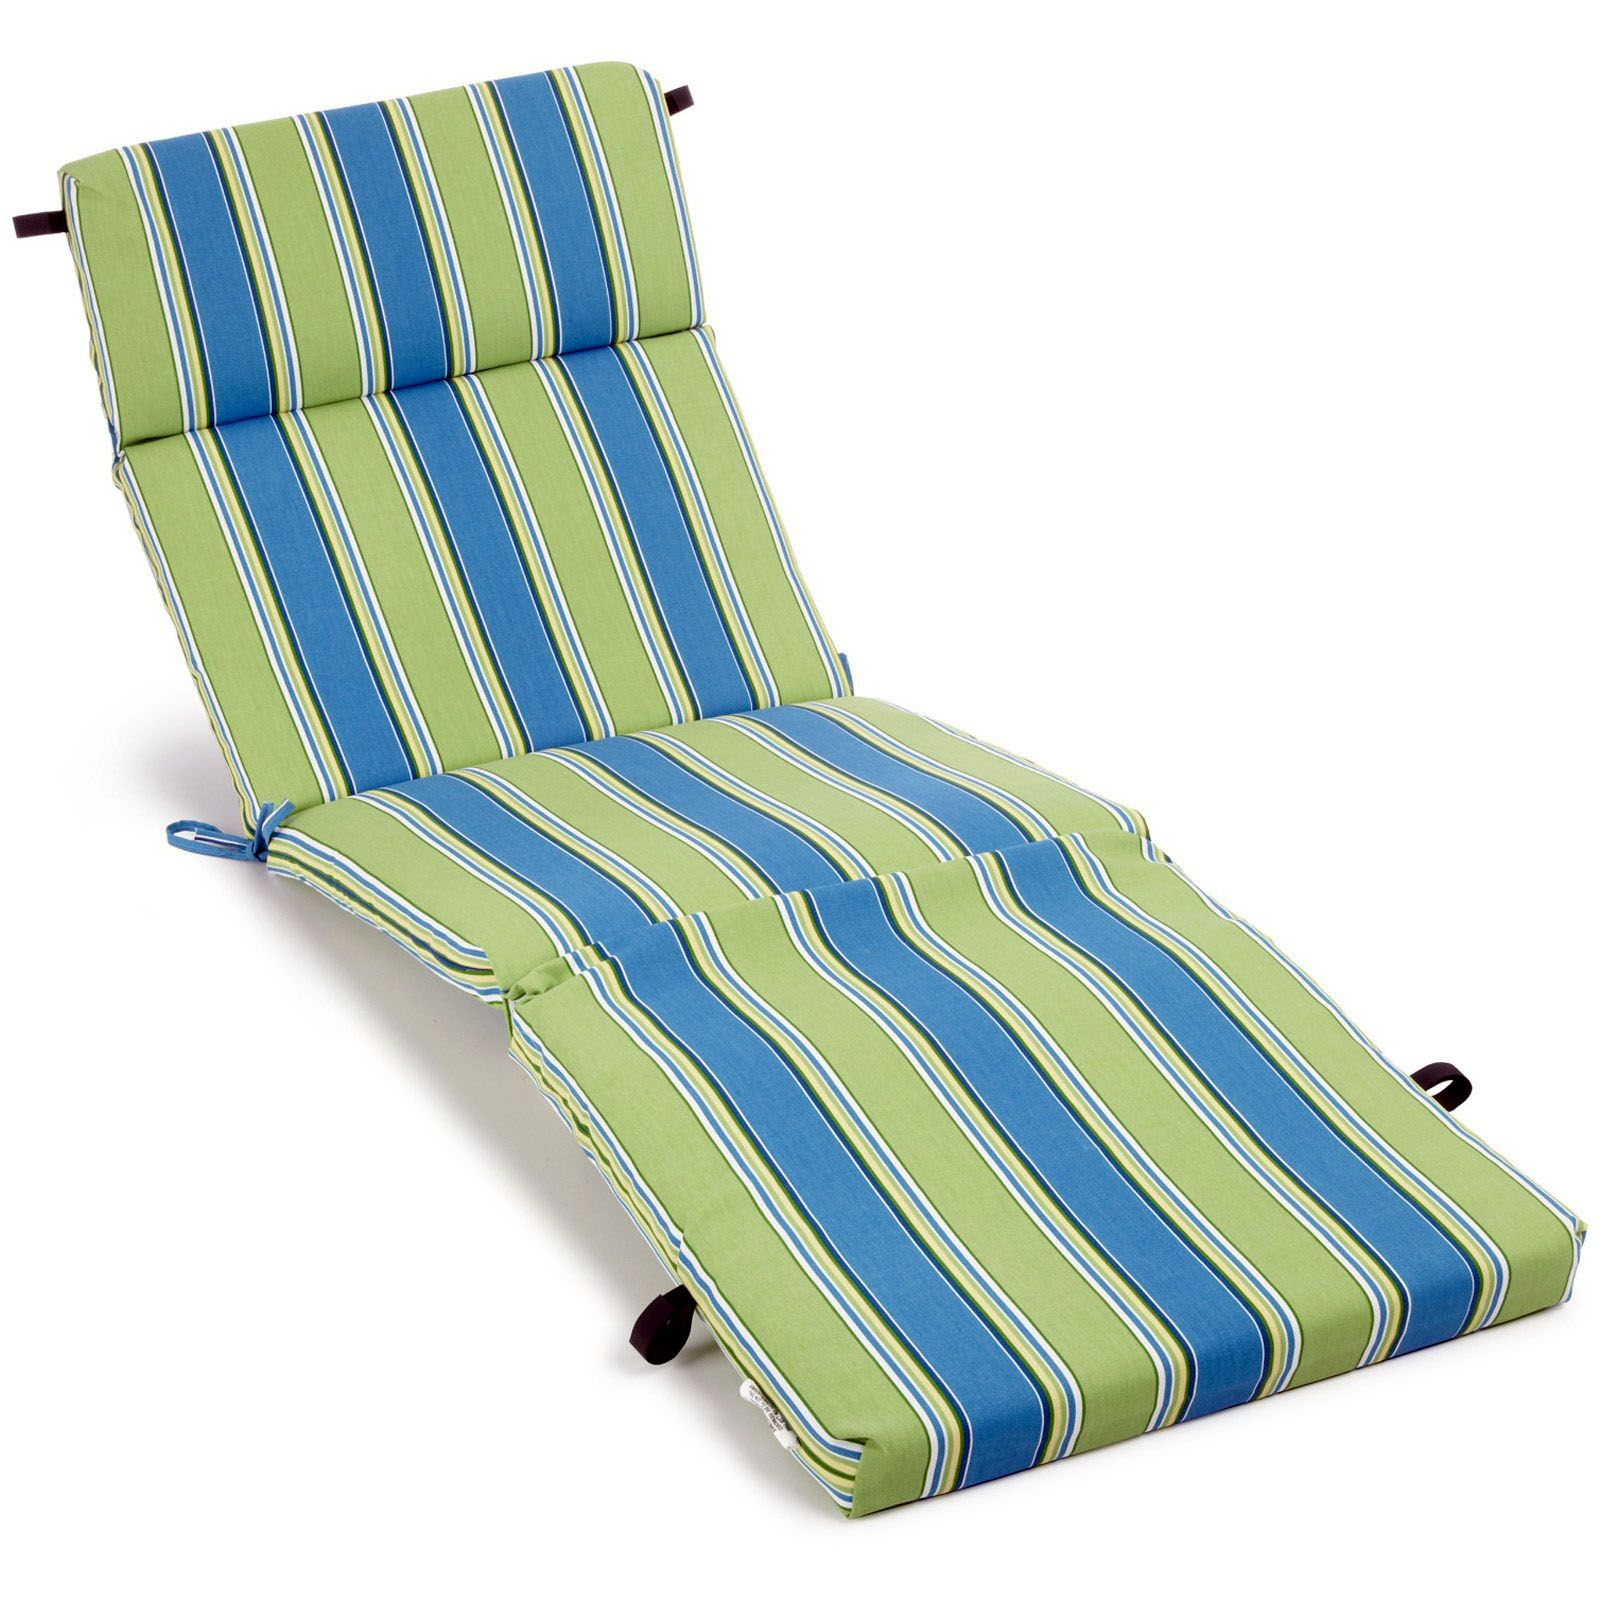 Amazon Com S Exterior Lounge Chairs Possess Us Woolgatherings Of Summer Season Staycations Outdoor Chaise Lounge Cushions Chaise Lounge Cushions Outdoor Chaise Lounge